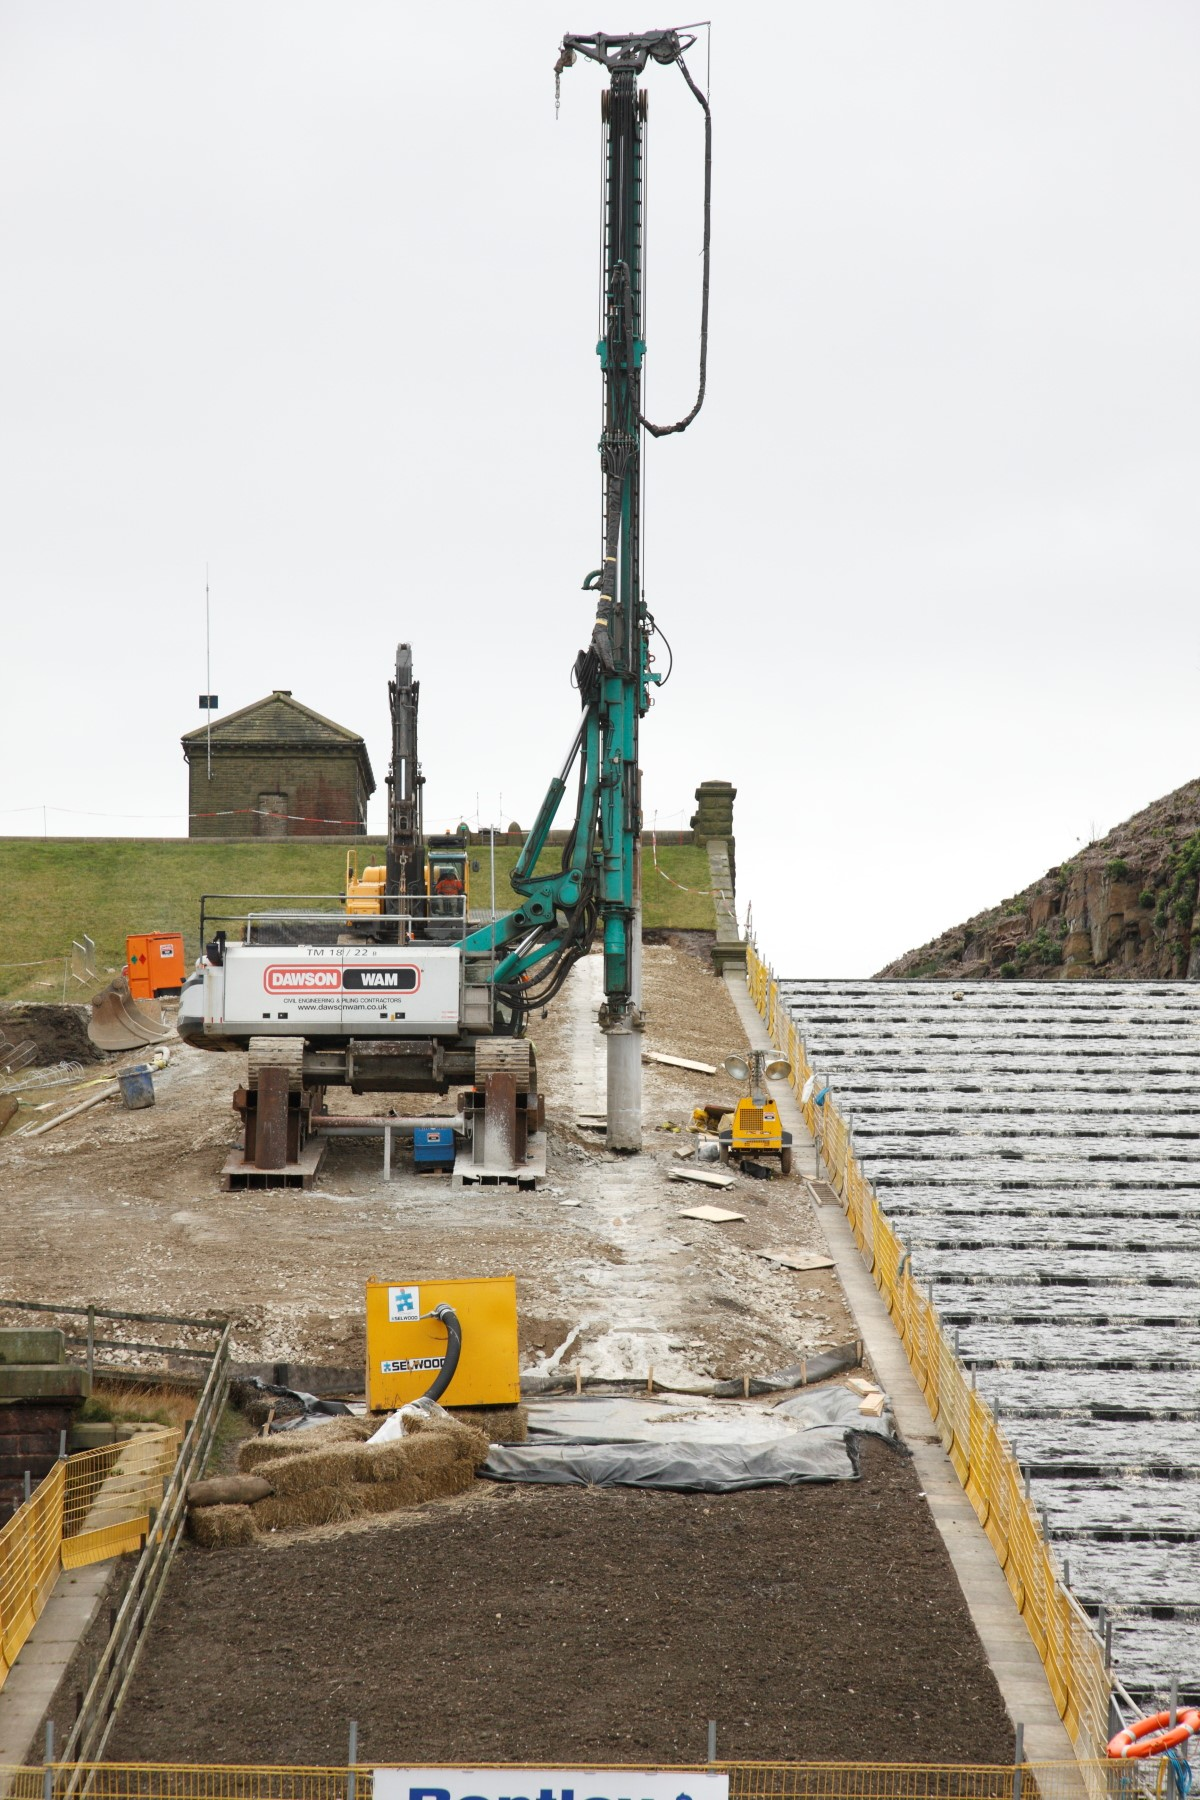 aYorkshire: Blakeley Reservoir Spillway Upgrade